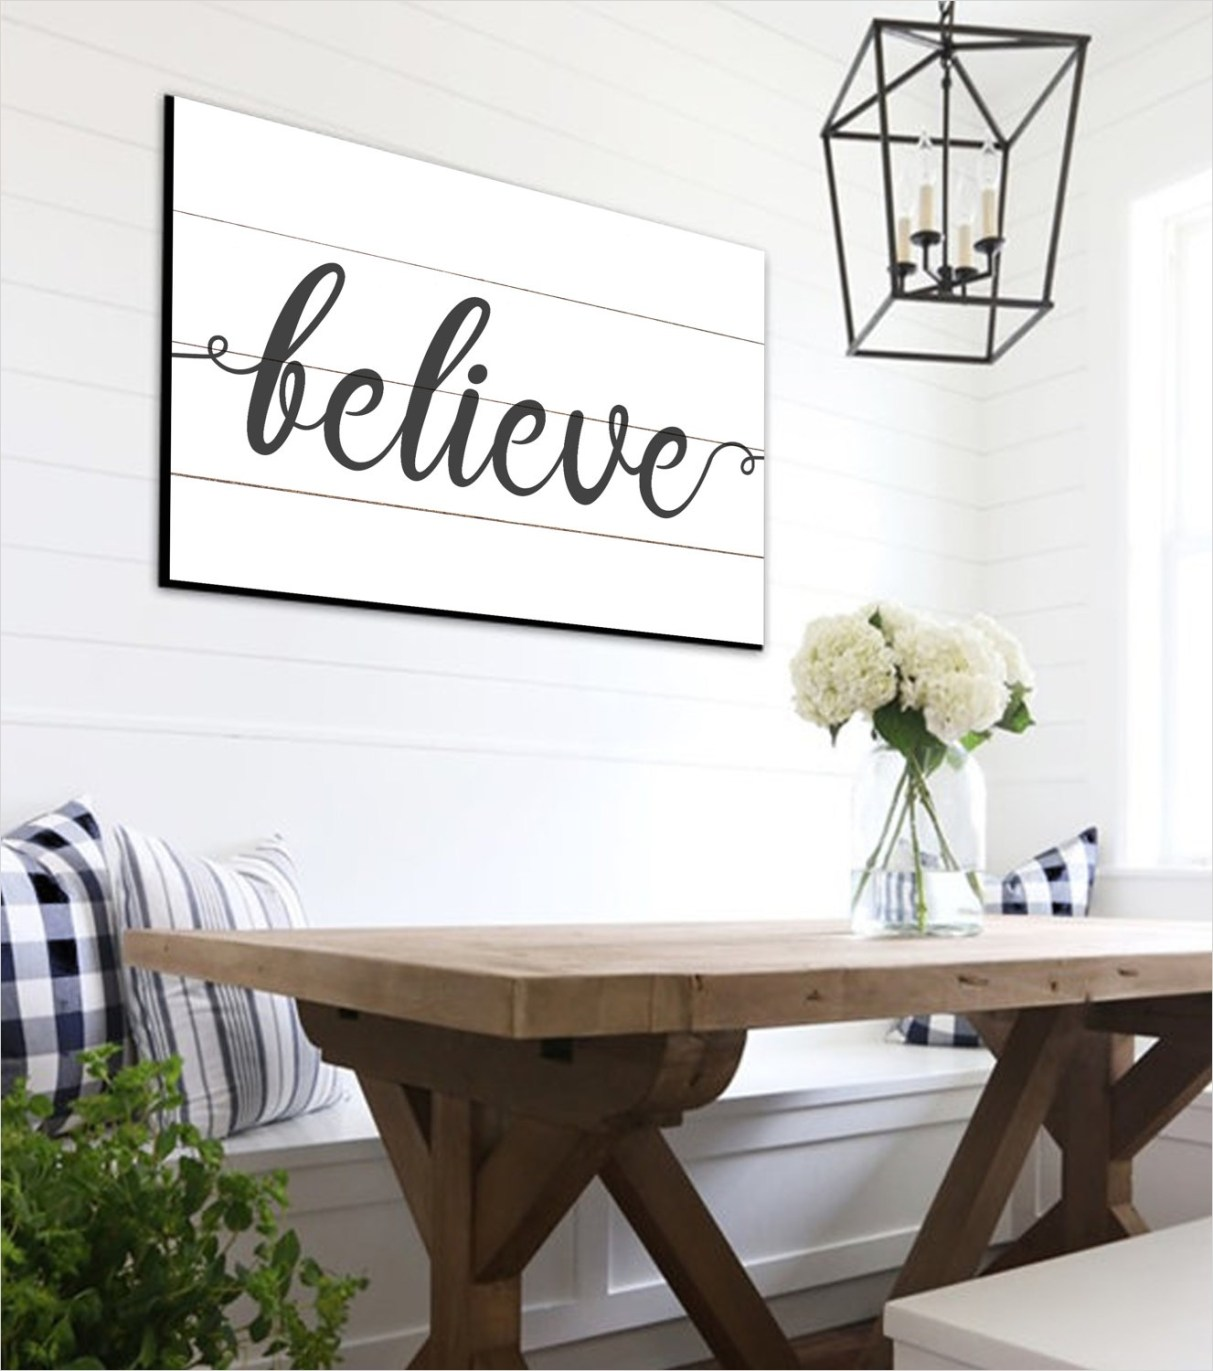 44 Gorgeous Farmhouse Wall Decor 24 Believe Shiplap Sign Farmhouse Wall Decor Rustic Home Decor 5